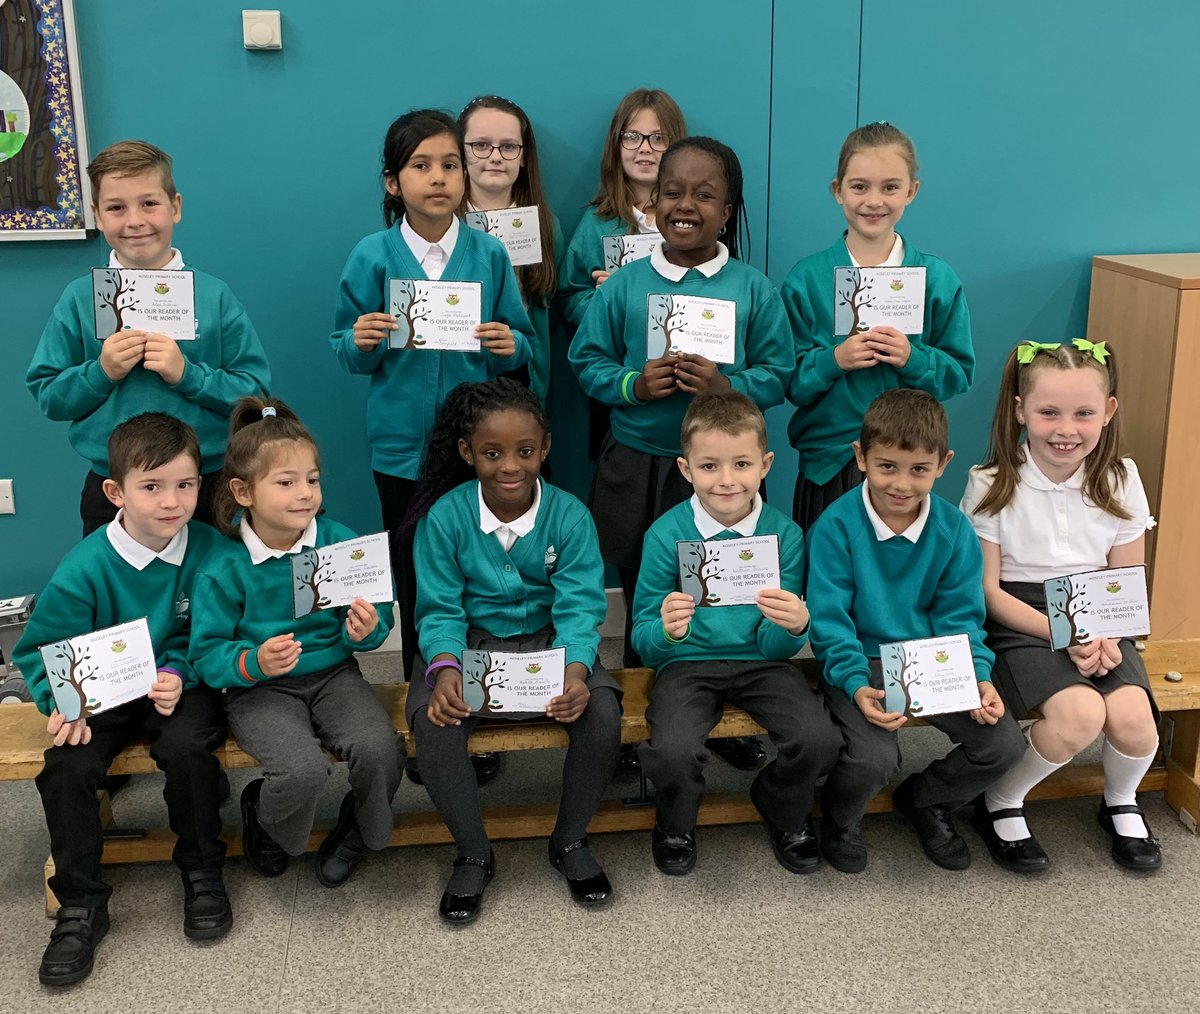 Our wonderful Readers of the Month <br>http://pic.twitter.com/yXRWDzTSK9